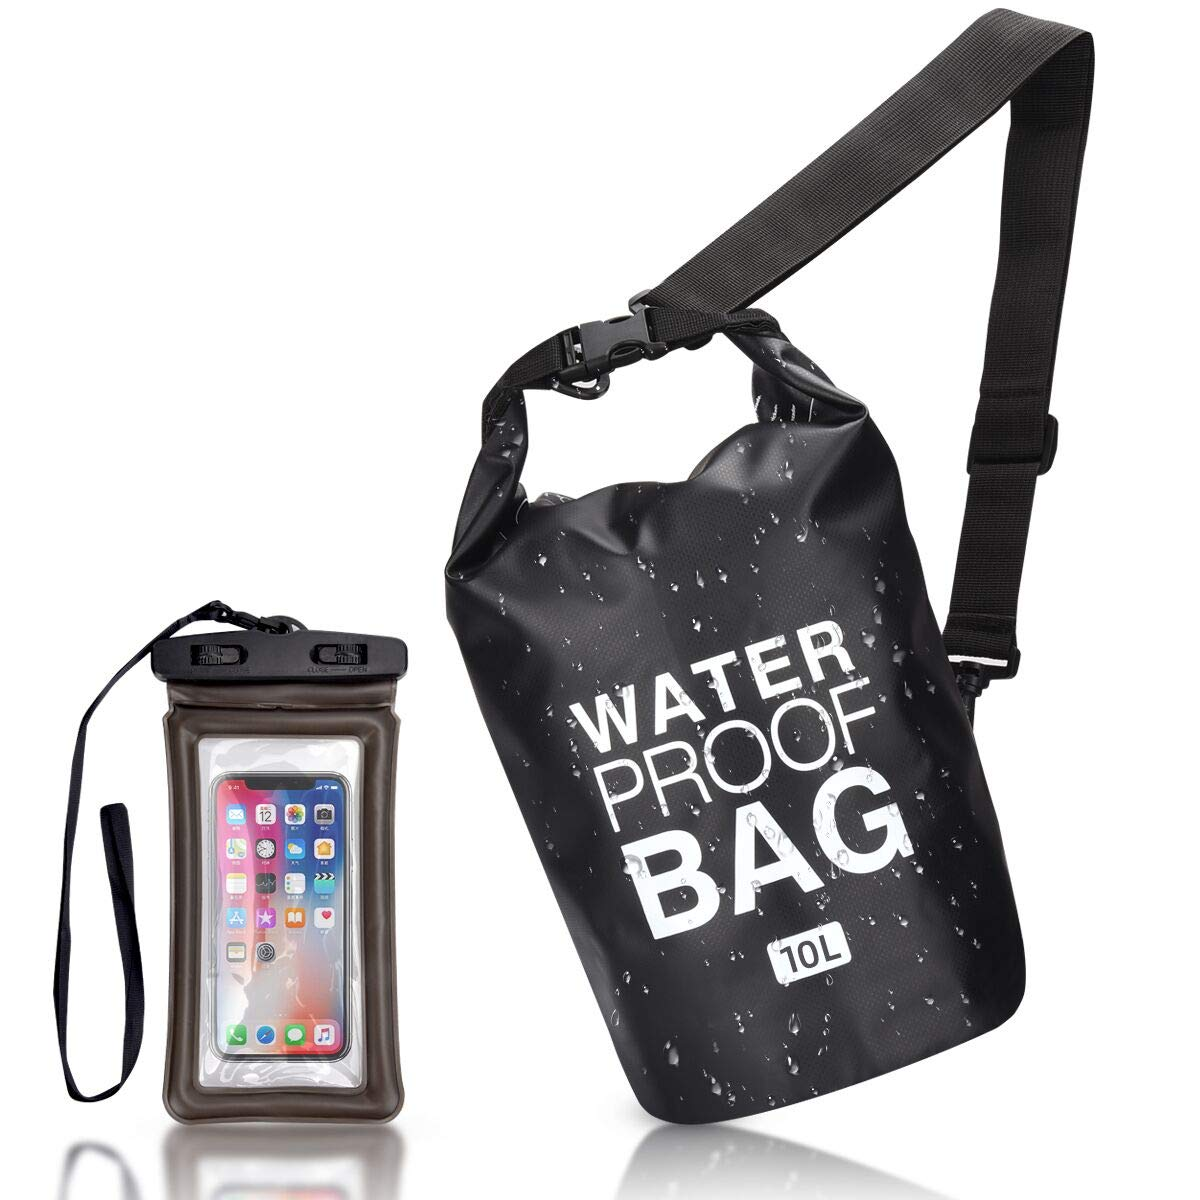 Nice waterproof bag